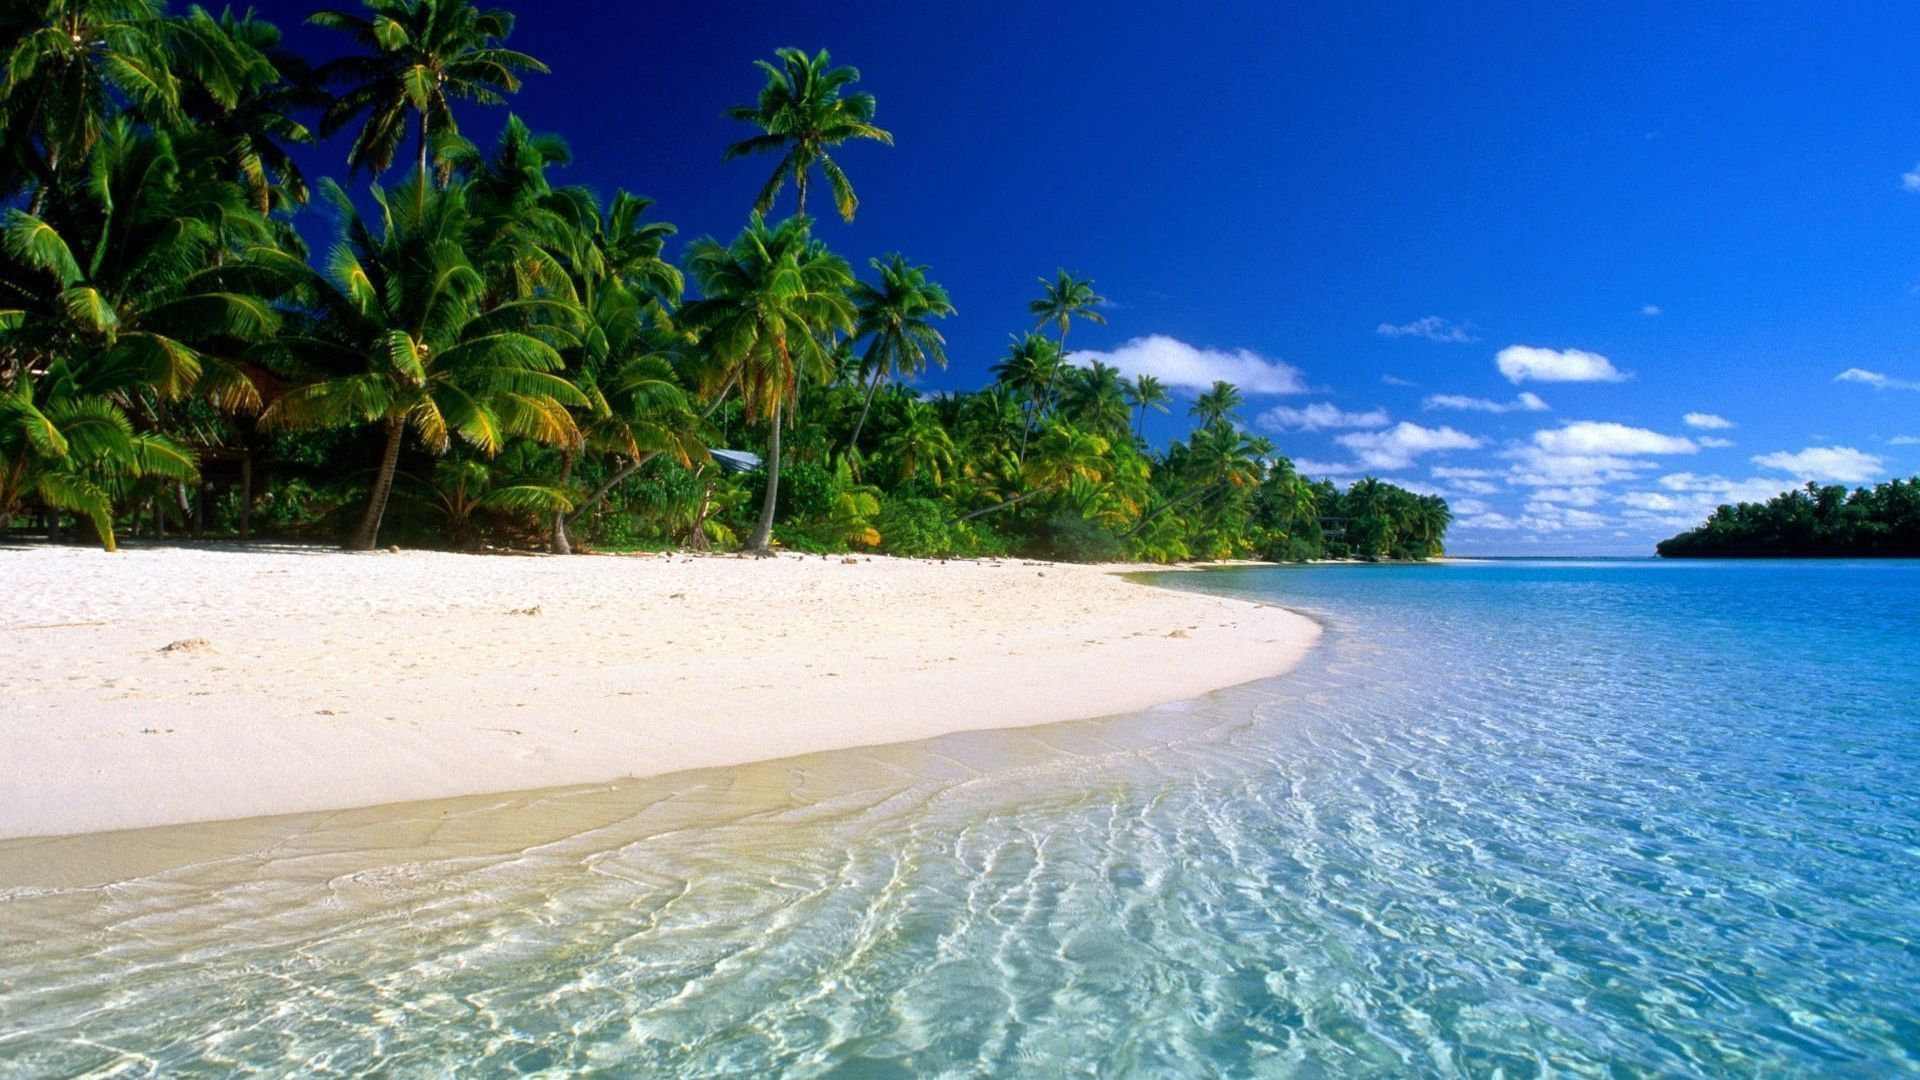 Hd wallpaper beach - Tropical Beach Paradise